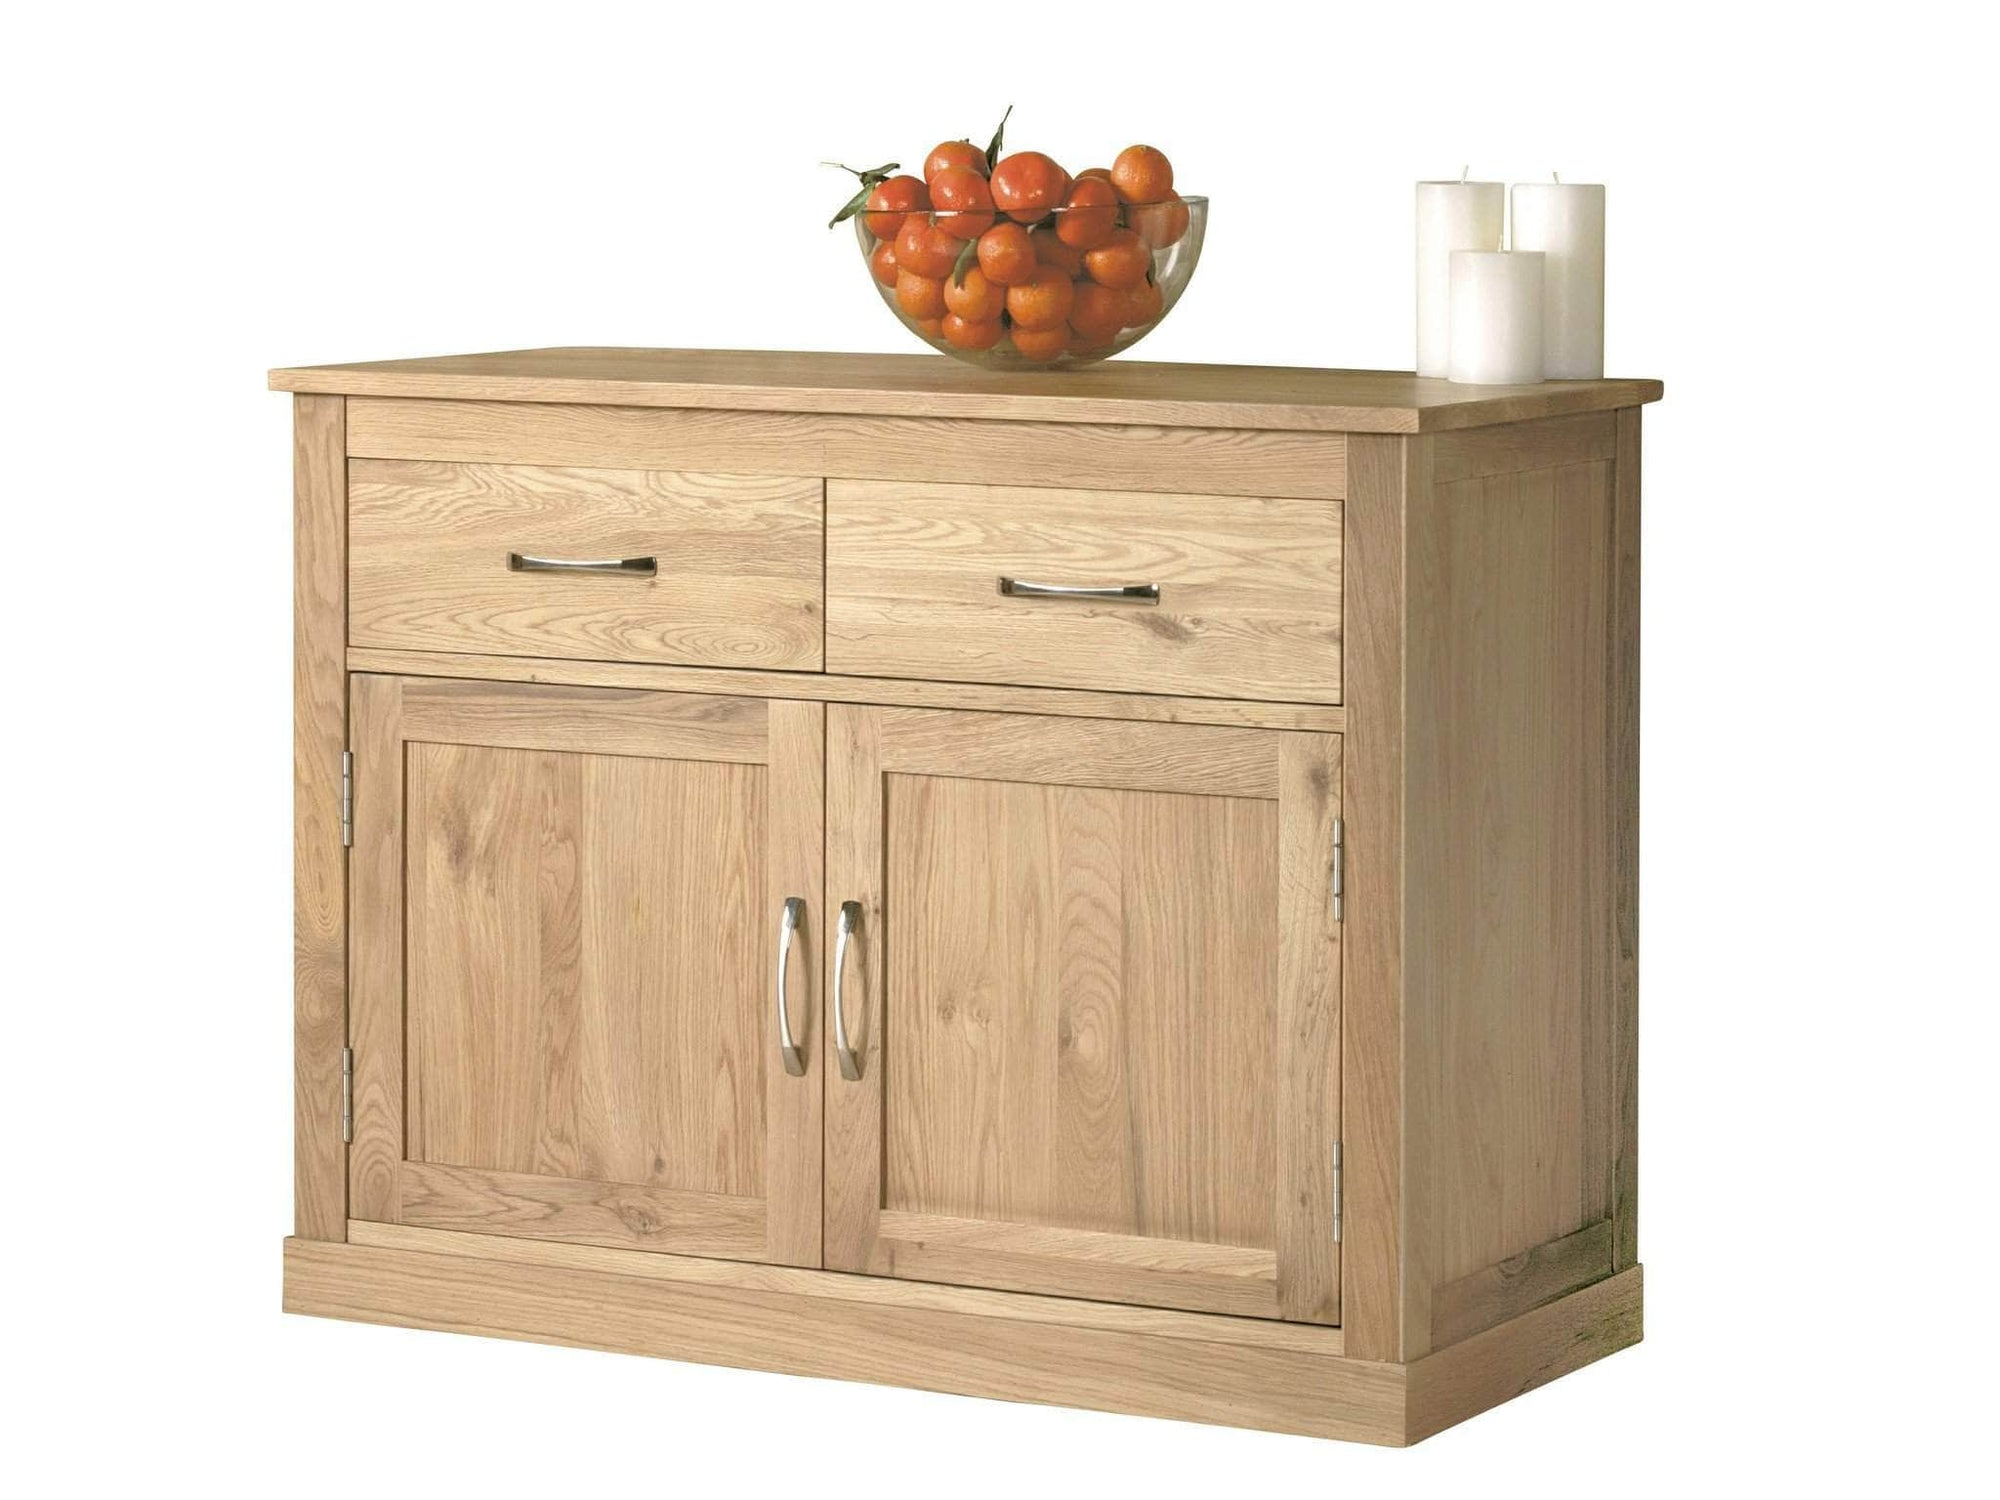 Small, low height sideboard made from solid oak, with two drawers and a cupboard